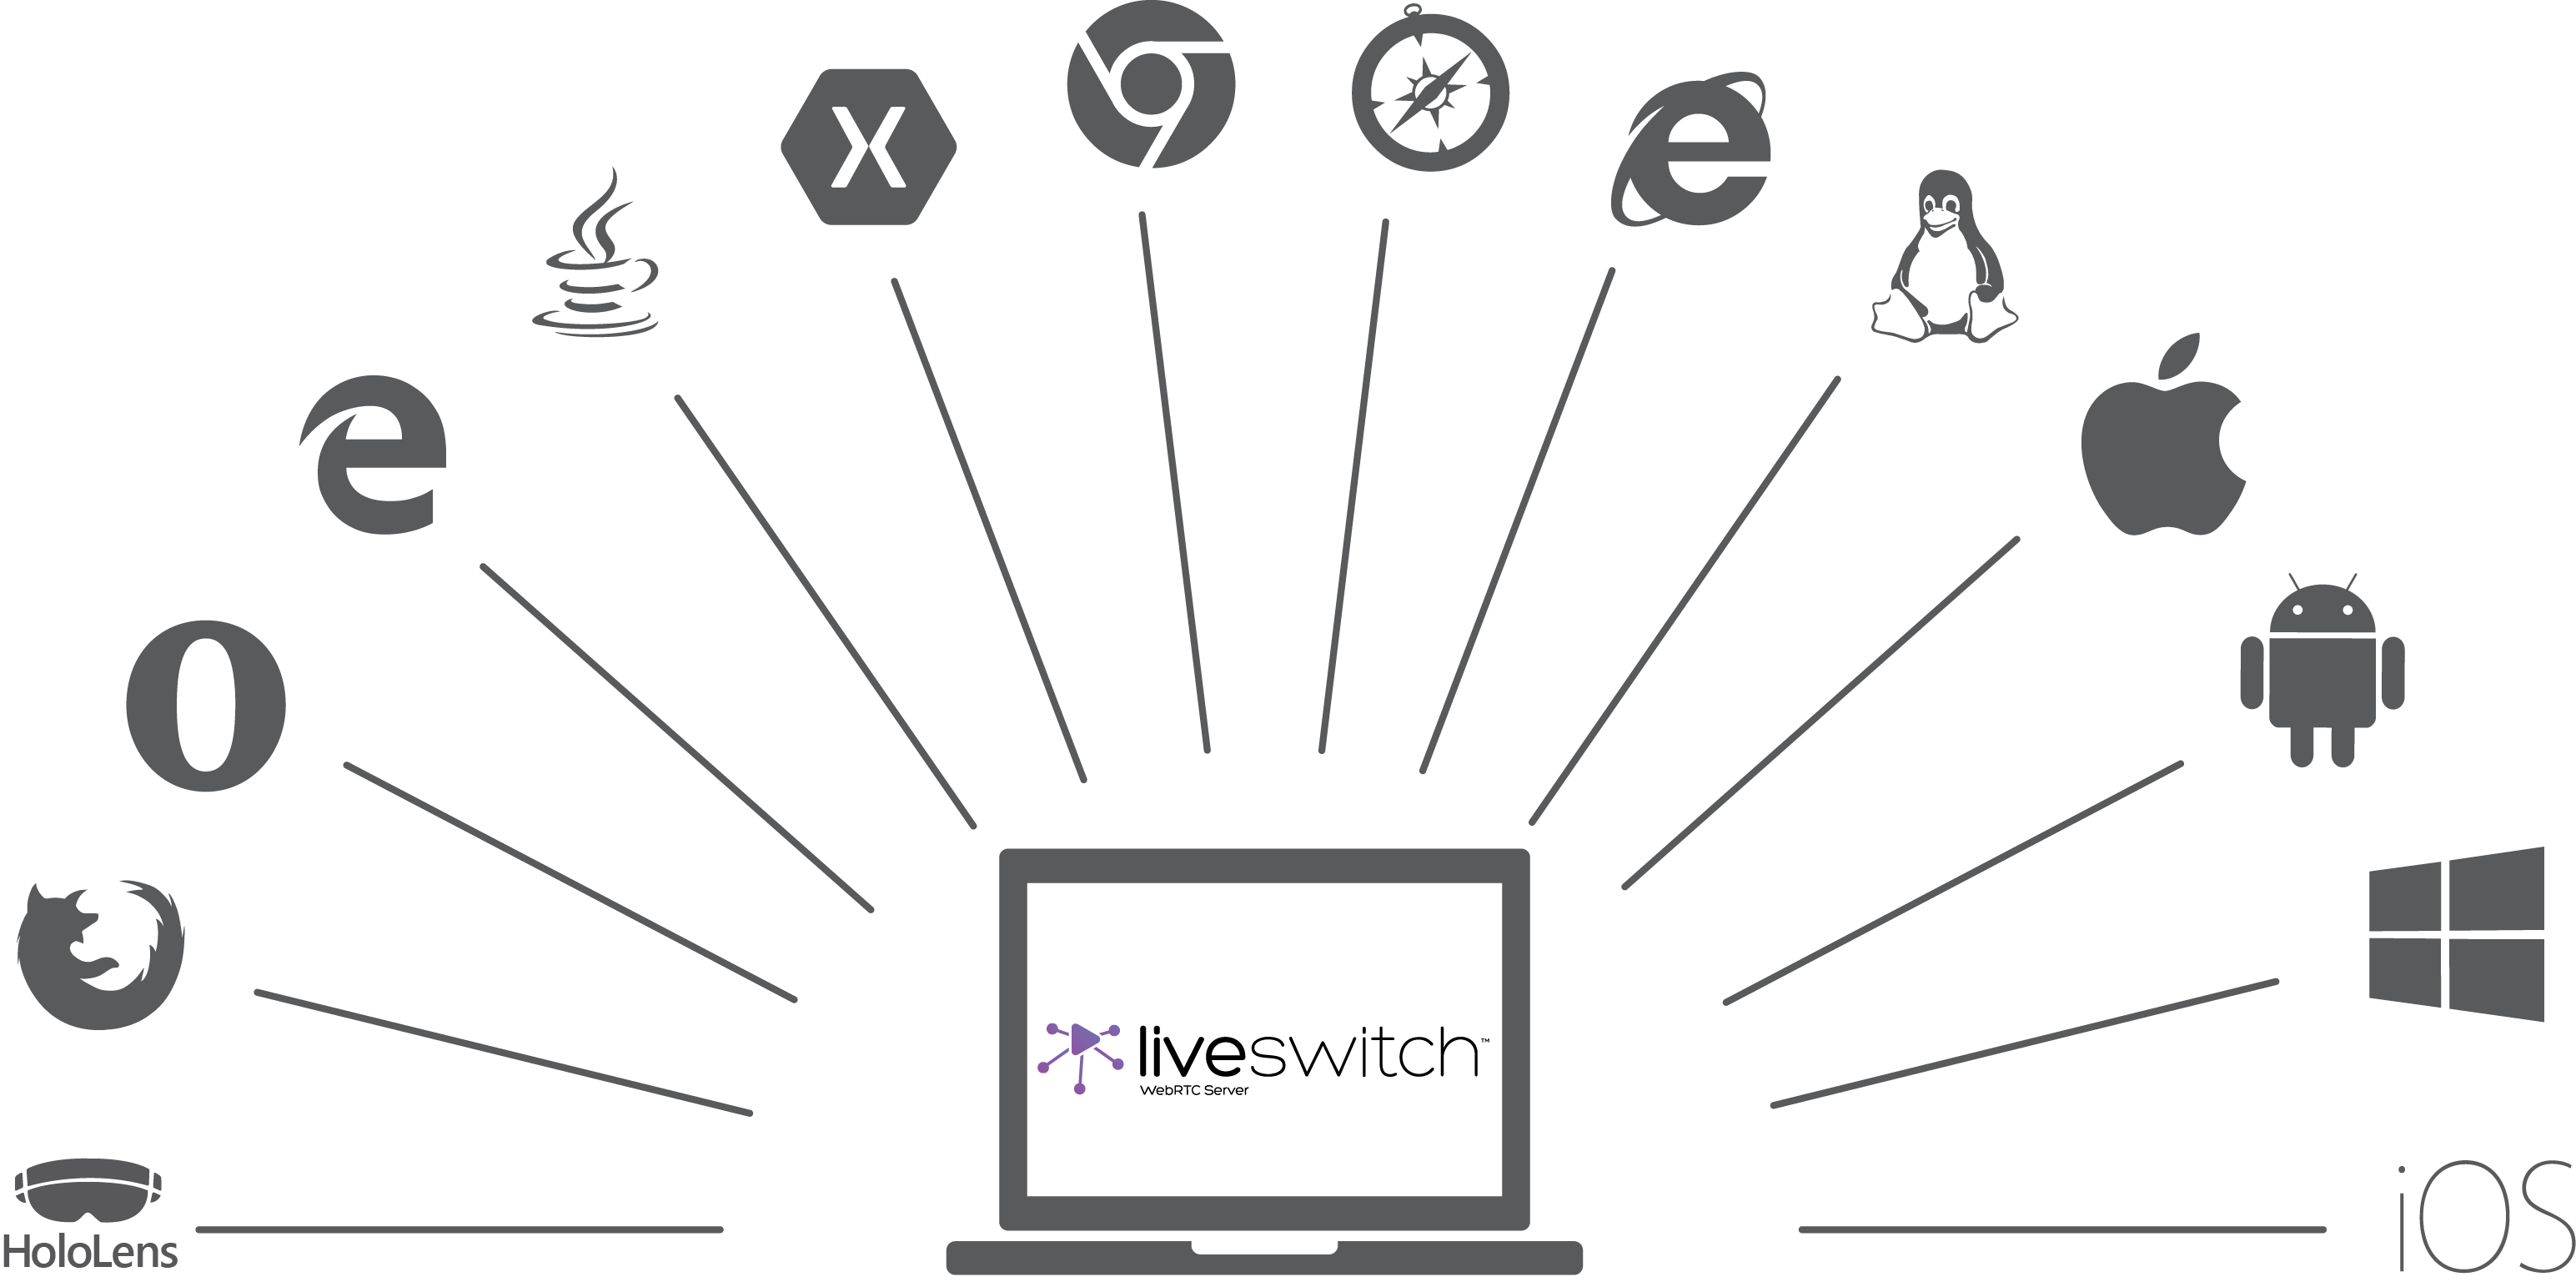 LiveSwitch connects to the most platforms